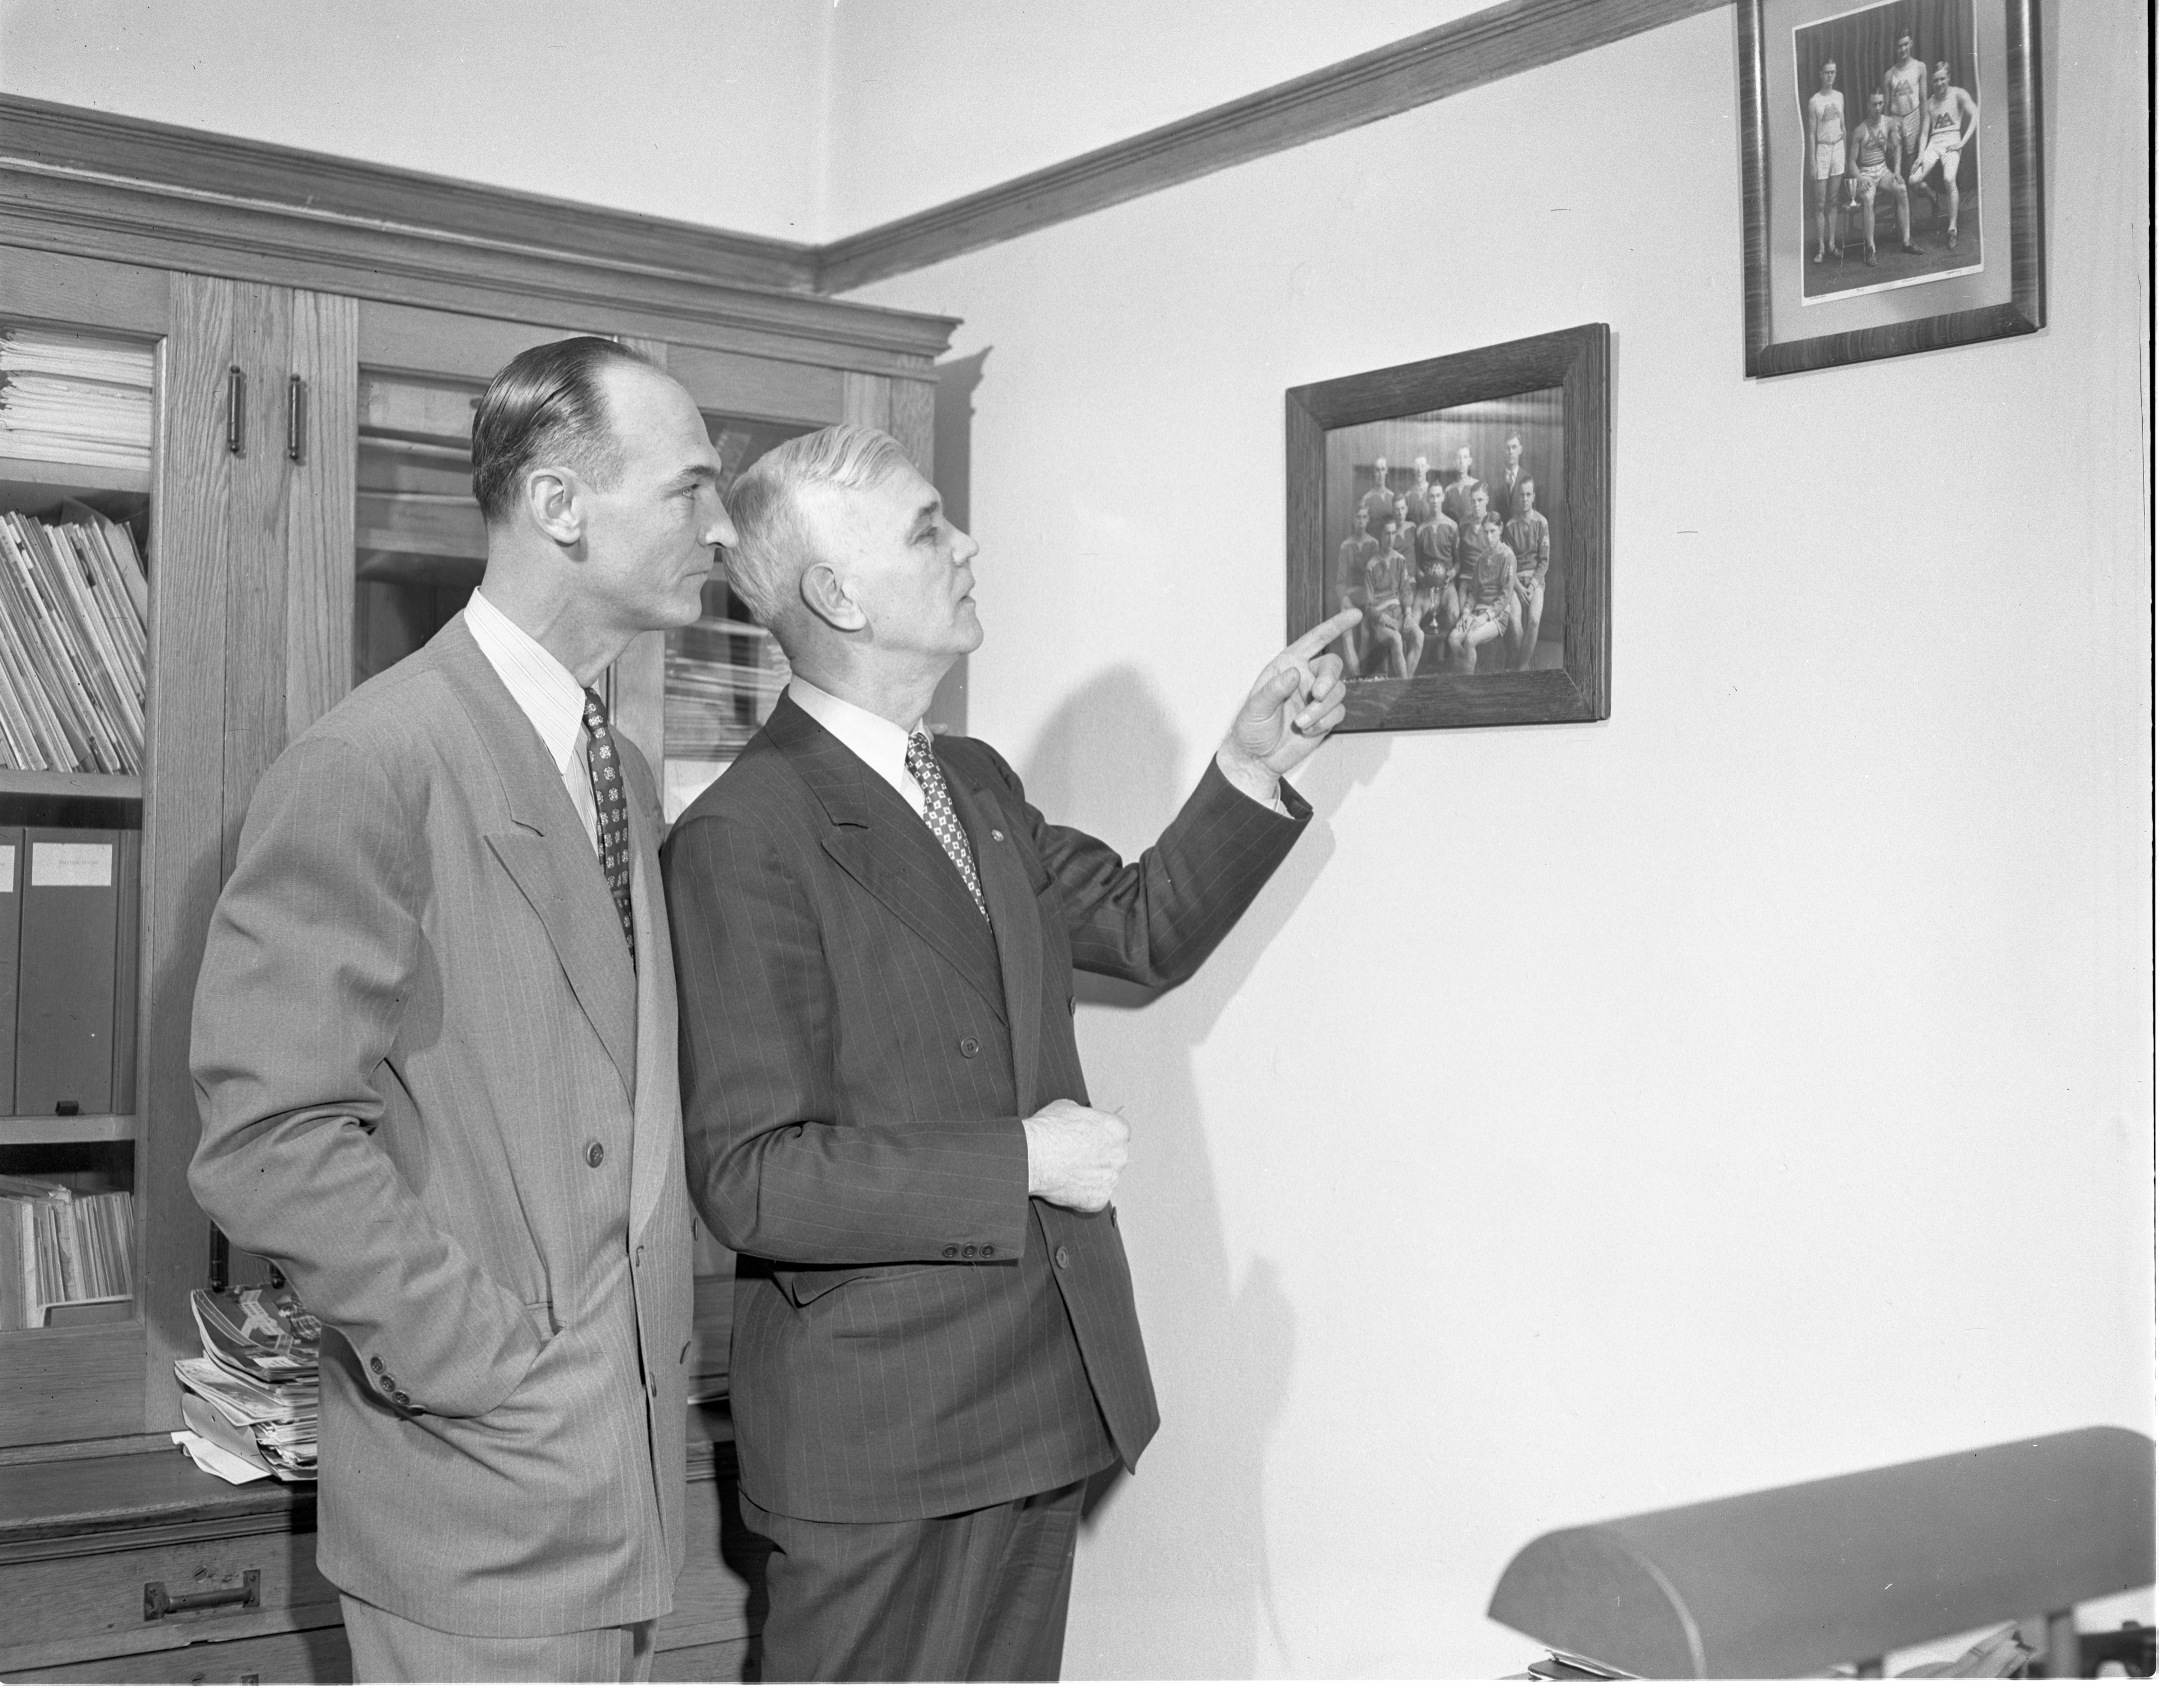 Kip Taylor Visits Lou Hollway At Ann Arbor High School, January 1950 image